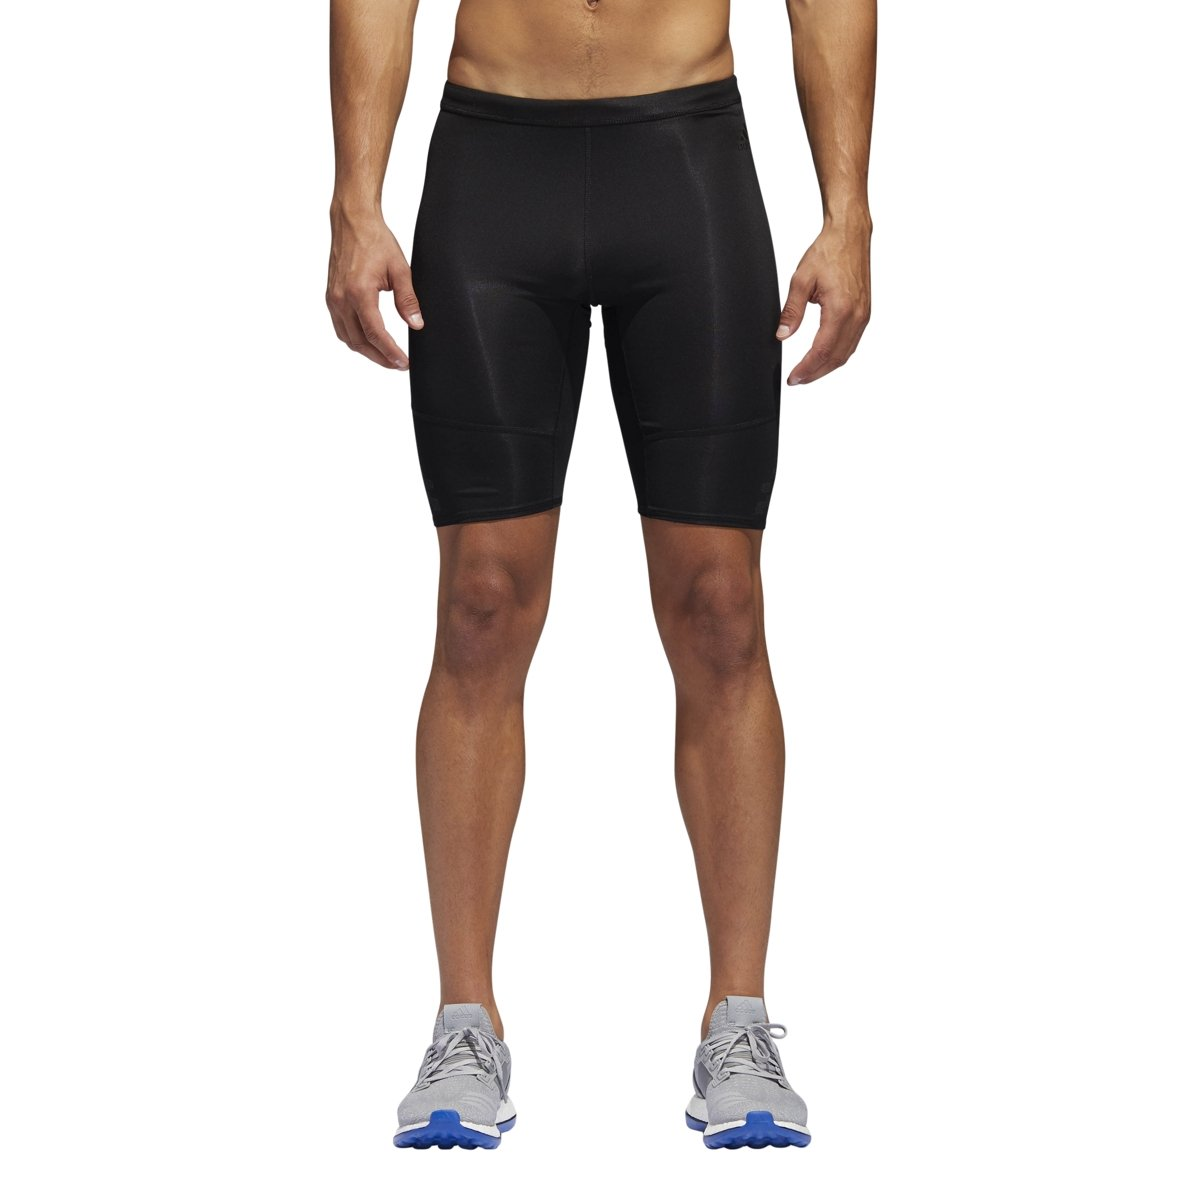 adidas Sport Performance Men's Supernova Short Tights, Black, 2XL